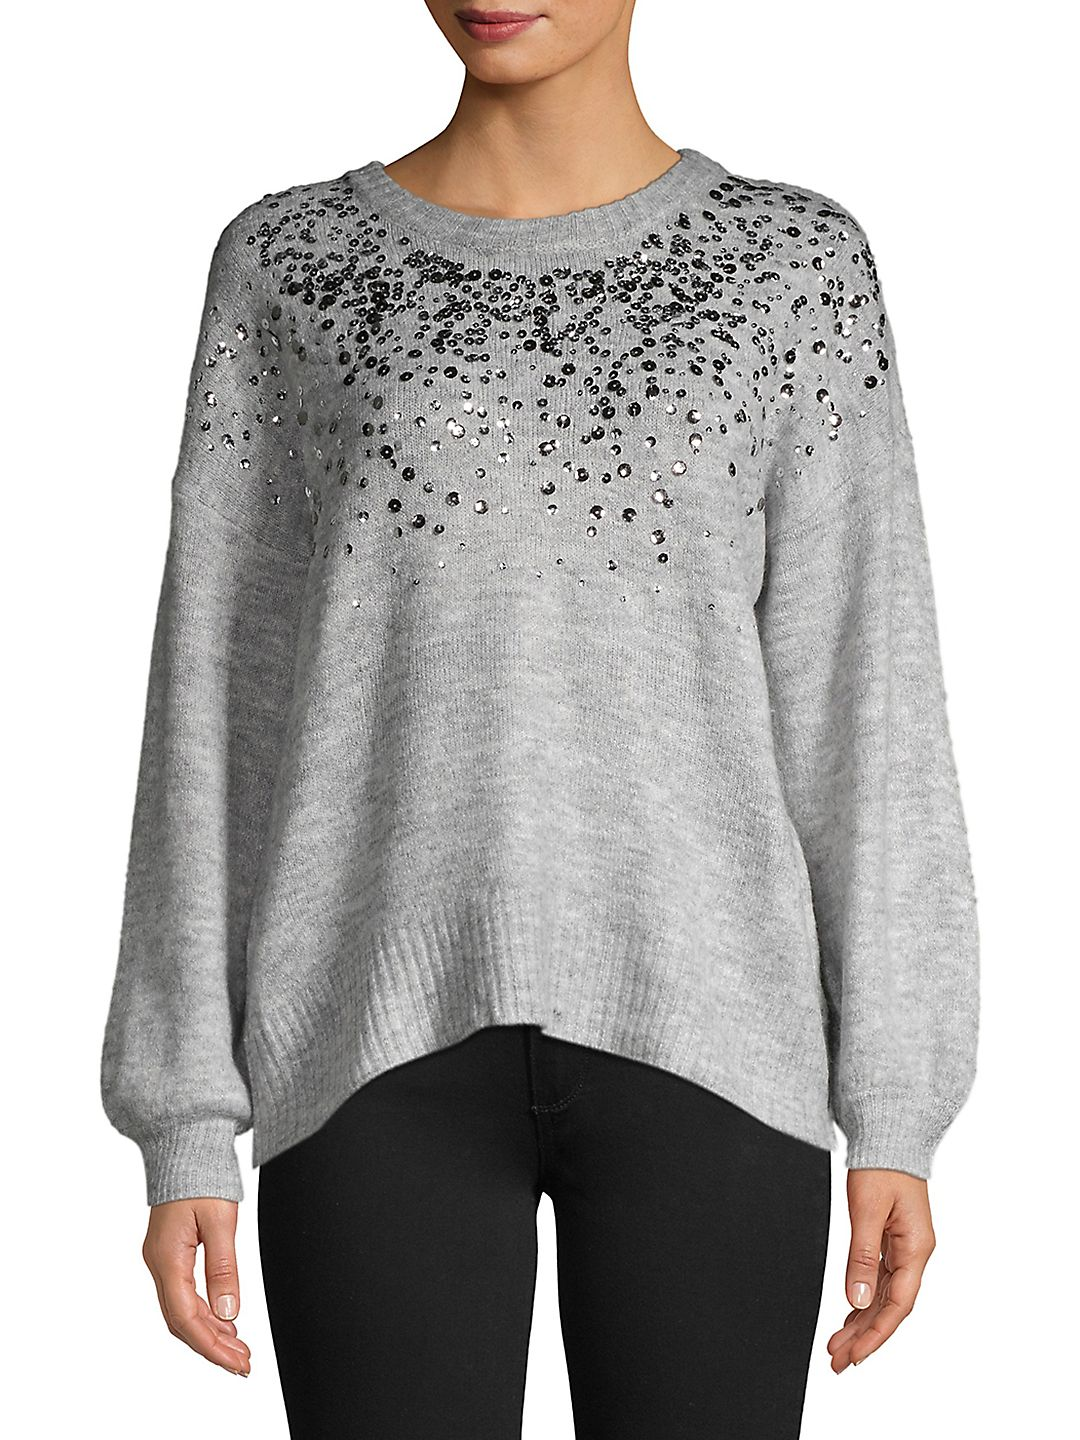 Sequin Sprinkle High-Low Sweater